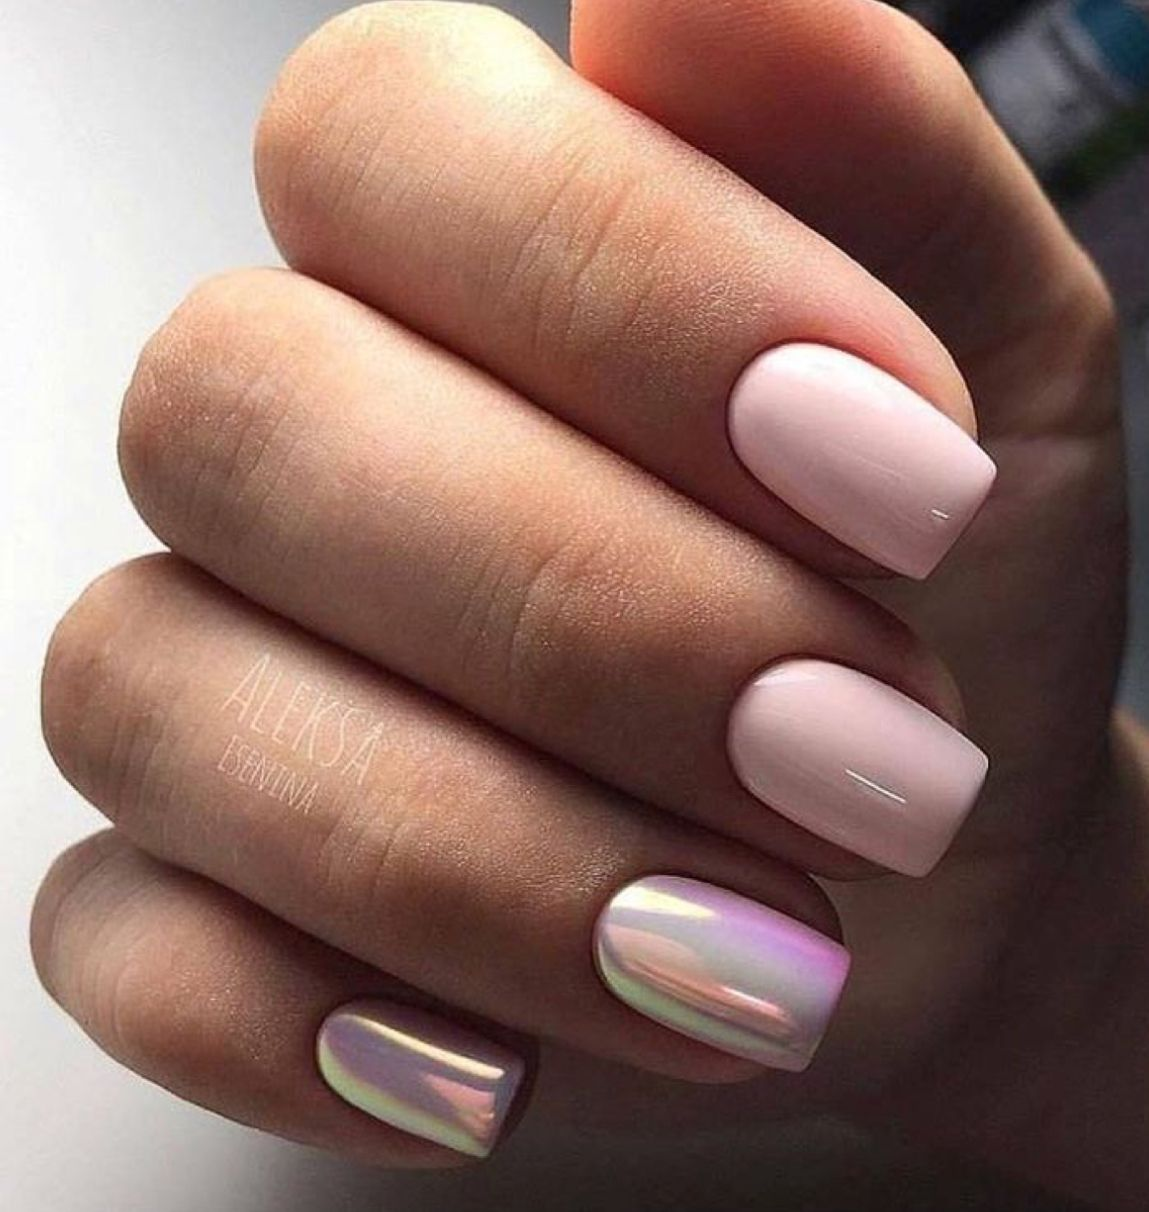 Pin By Sonka Staskova On Manicure Pink Nails Manicure Nail Designs